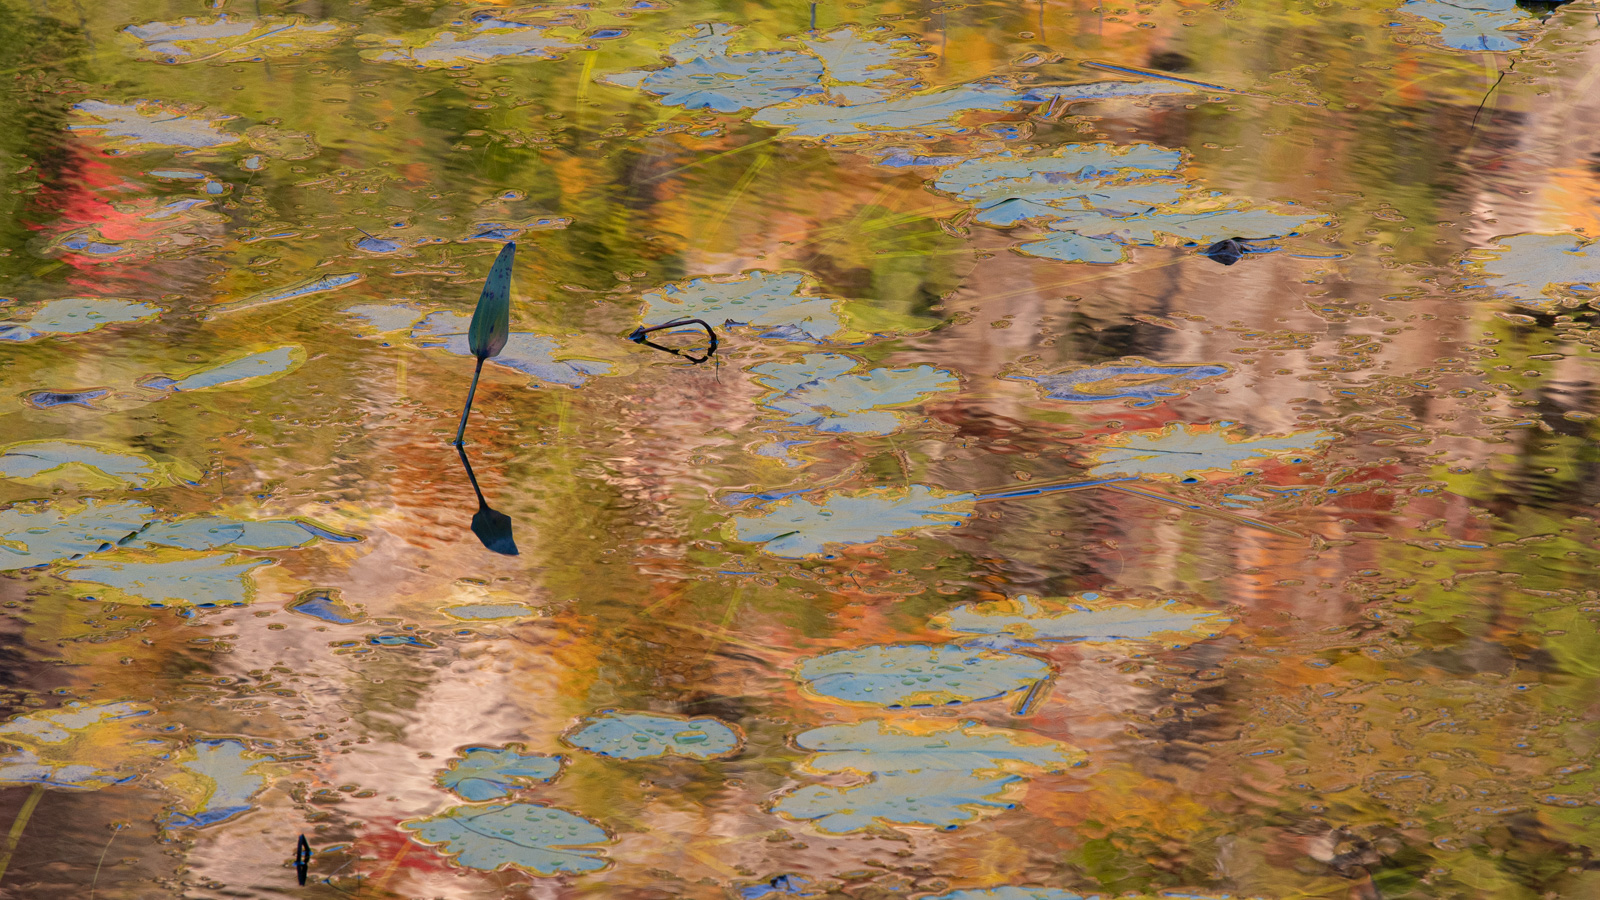 """Lilly pads and autumn reflections in the """"tarn"""", Acadia National Park."""